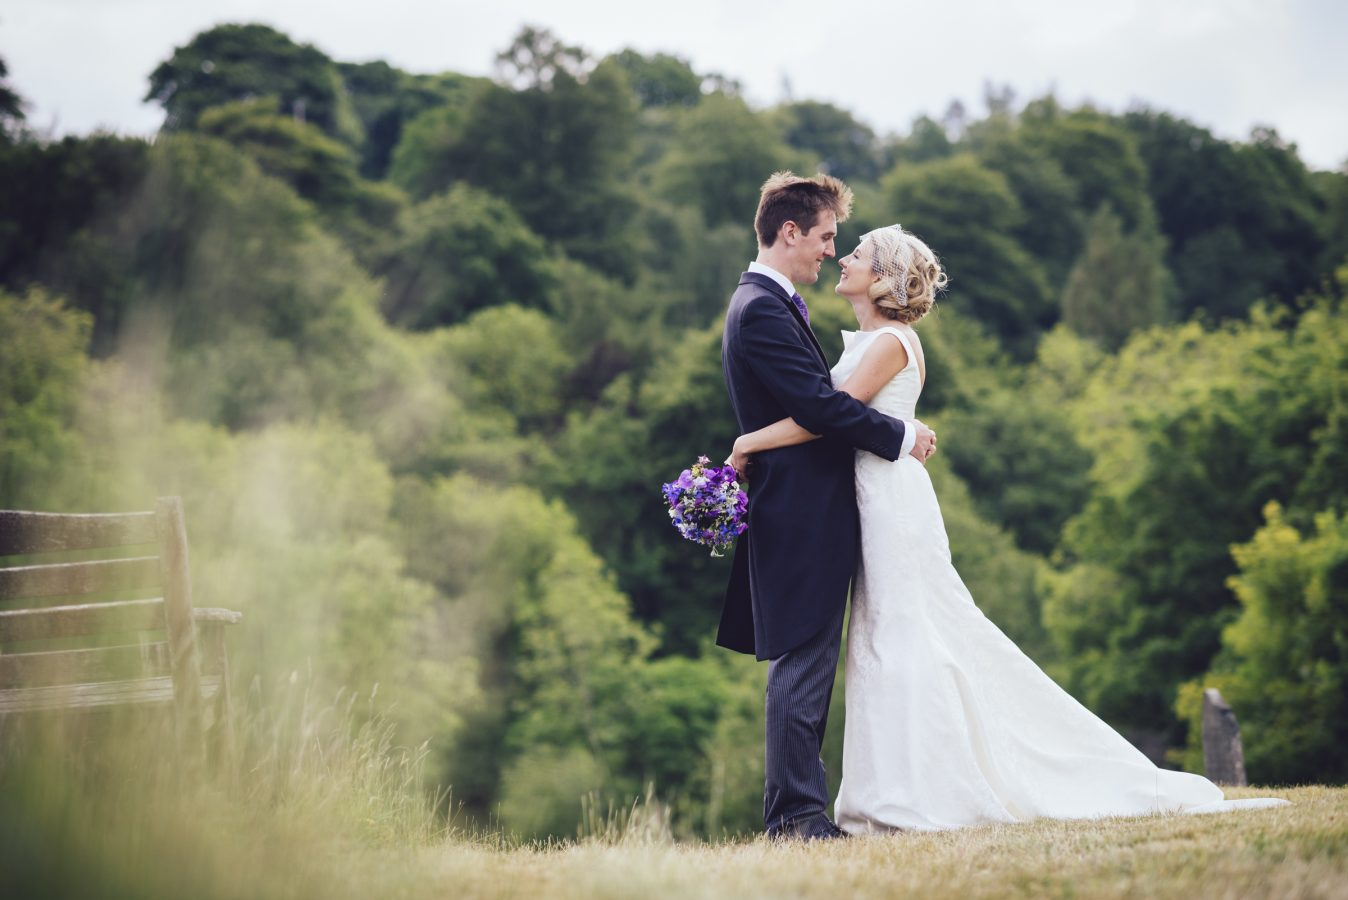 Wedding photographer in Preston, Lancashire